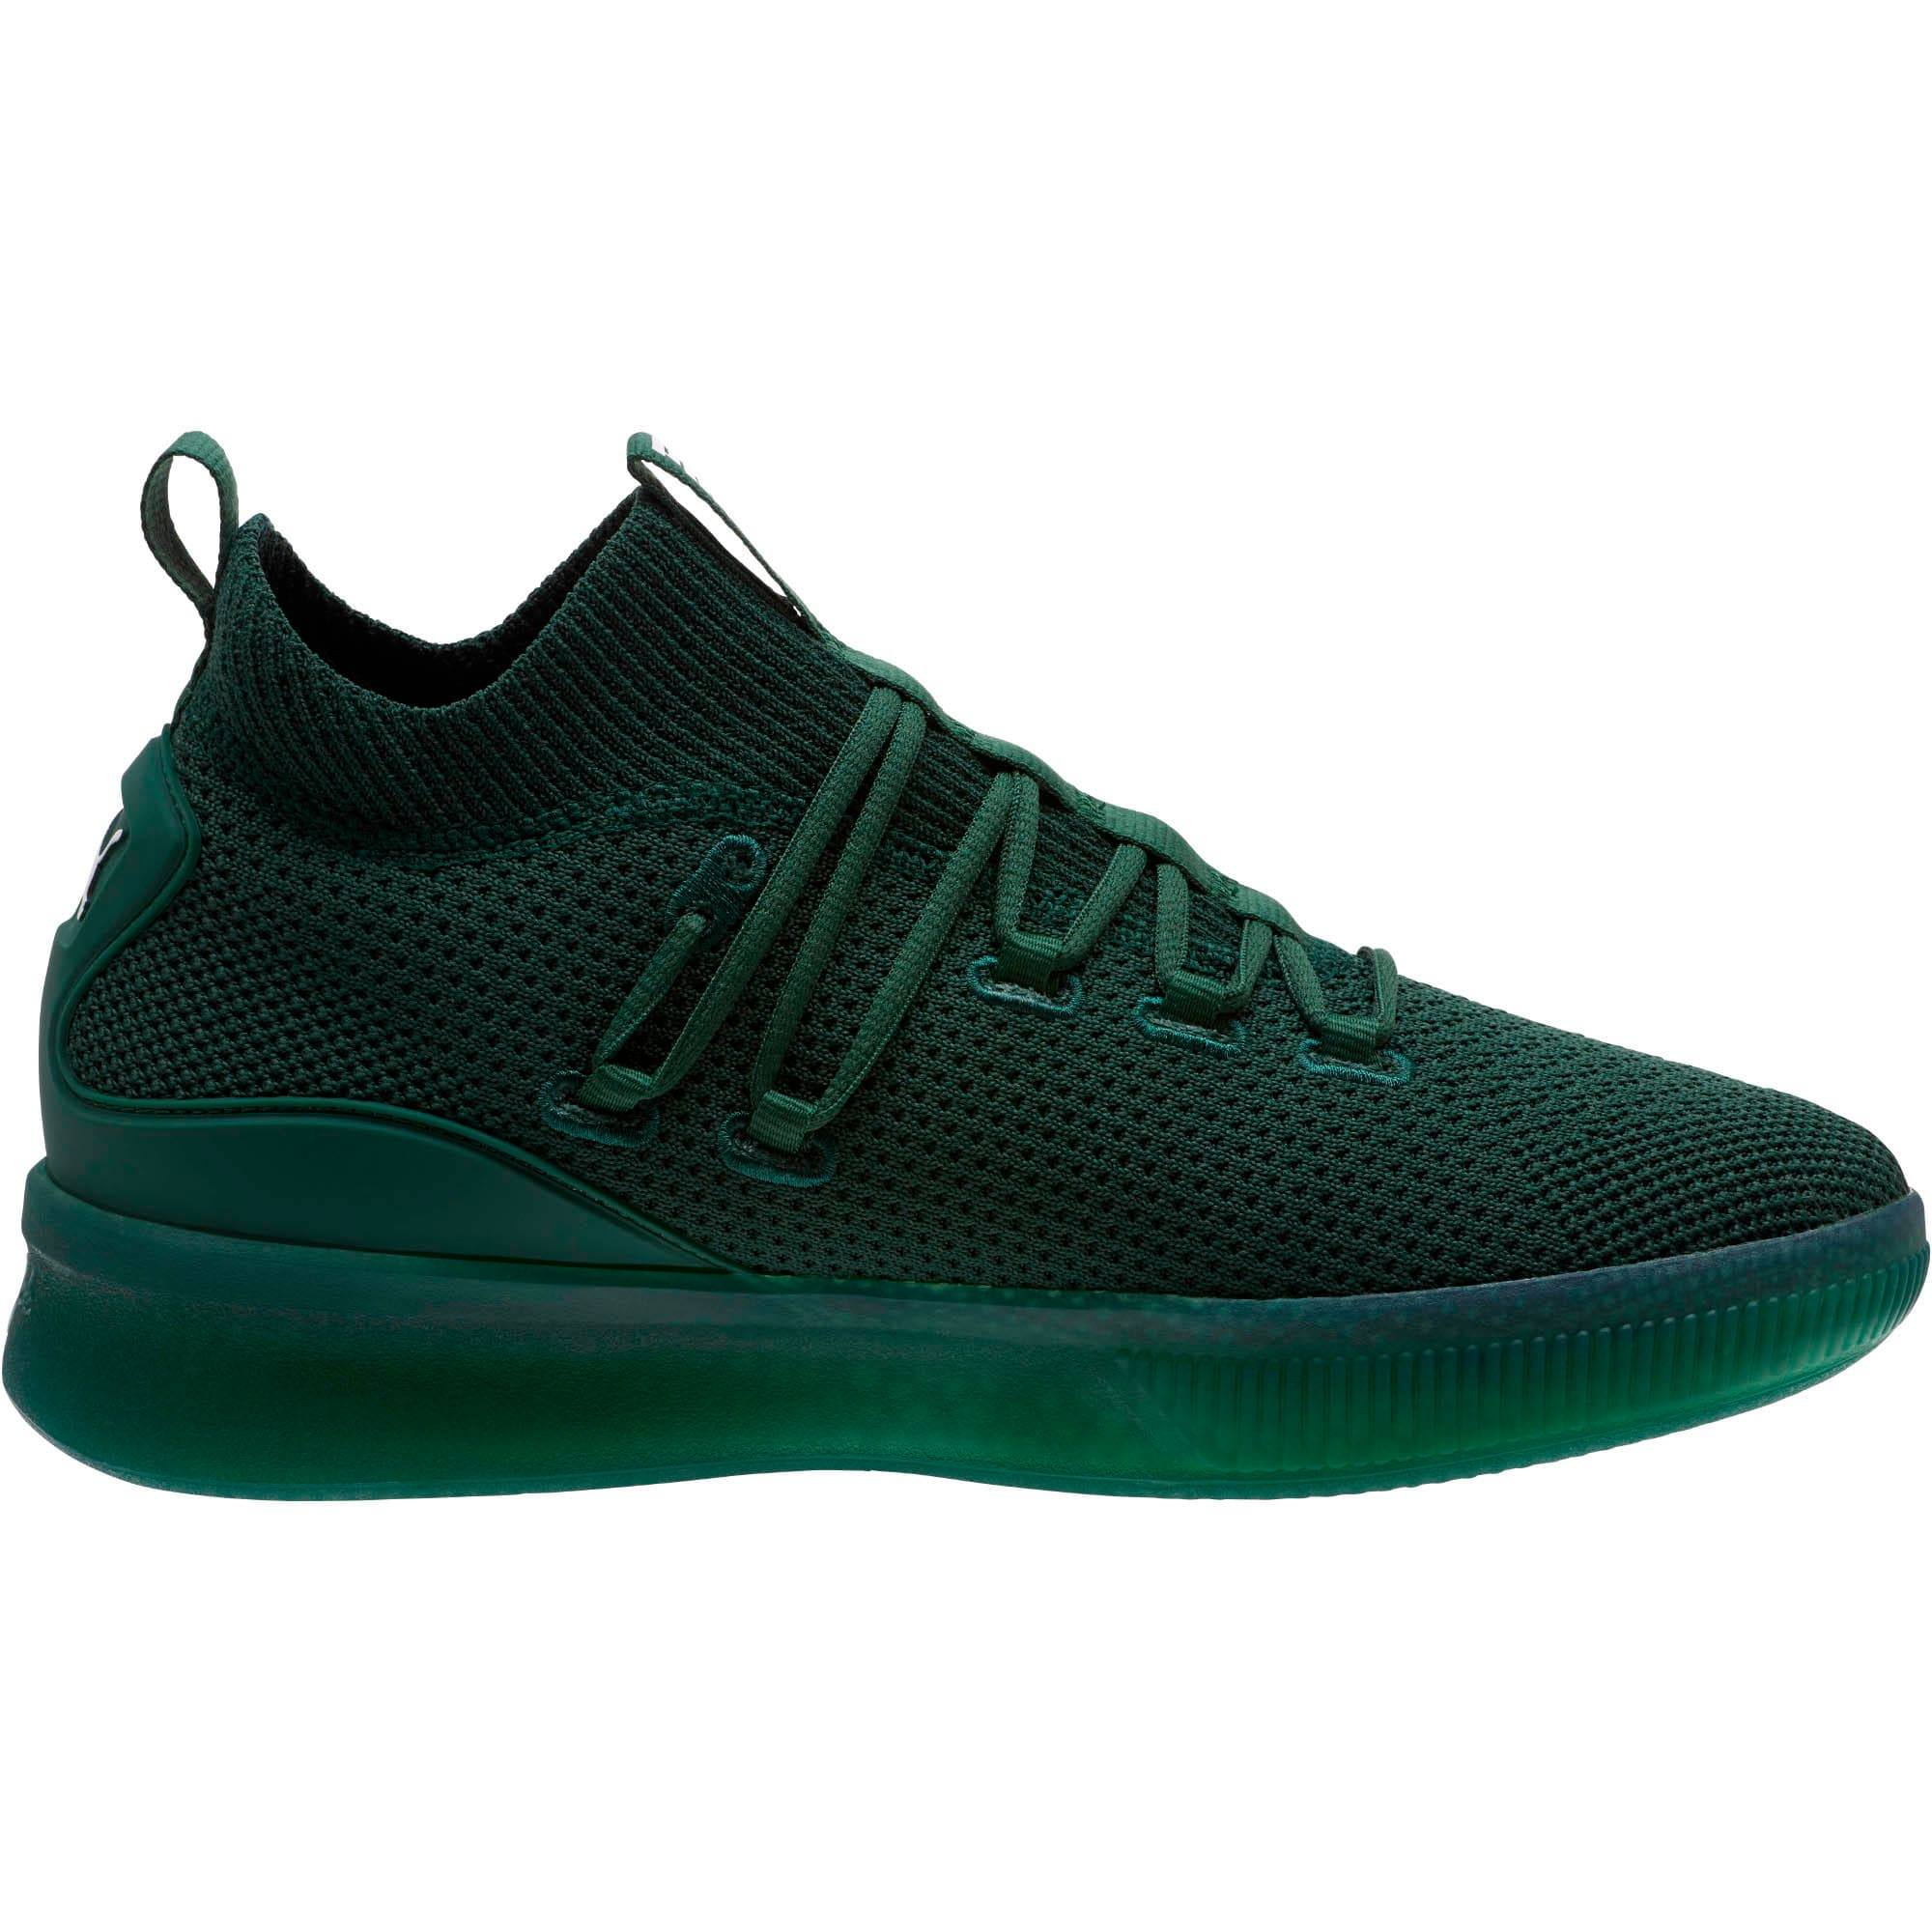 Thumbnail 3 of Clyde Court Core Basketball Shoes, Dark Green-Puma White, medium